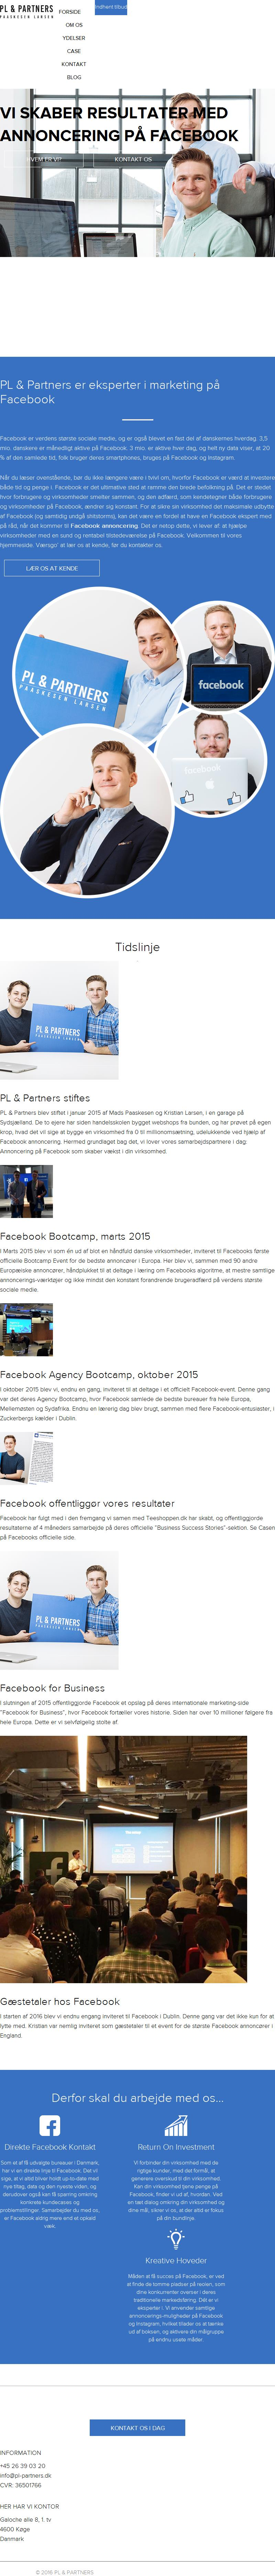 Detaljer : Facebook Marketing Bureau